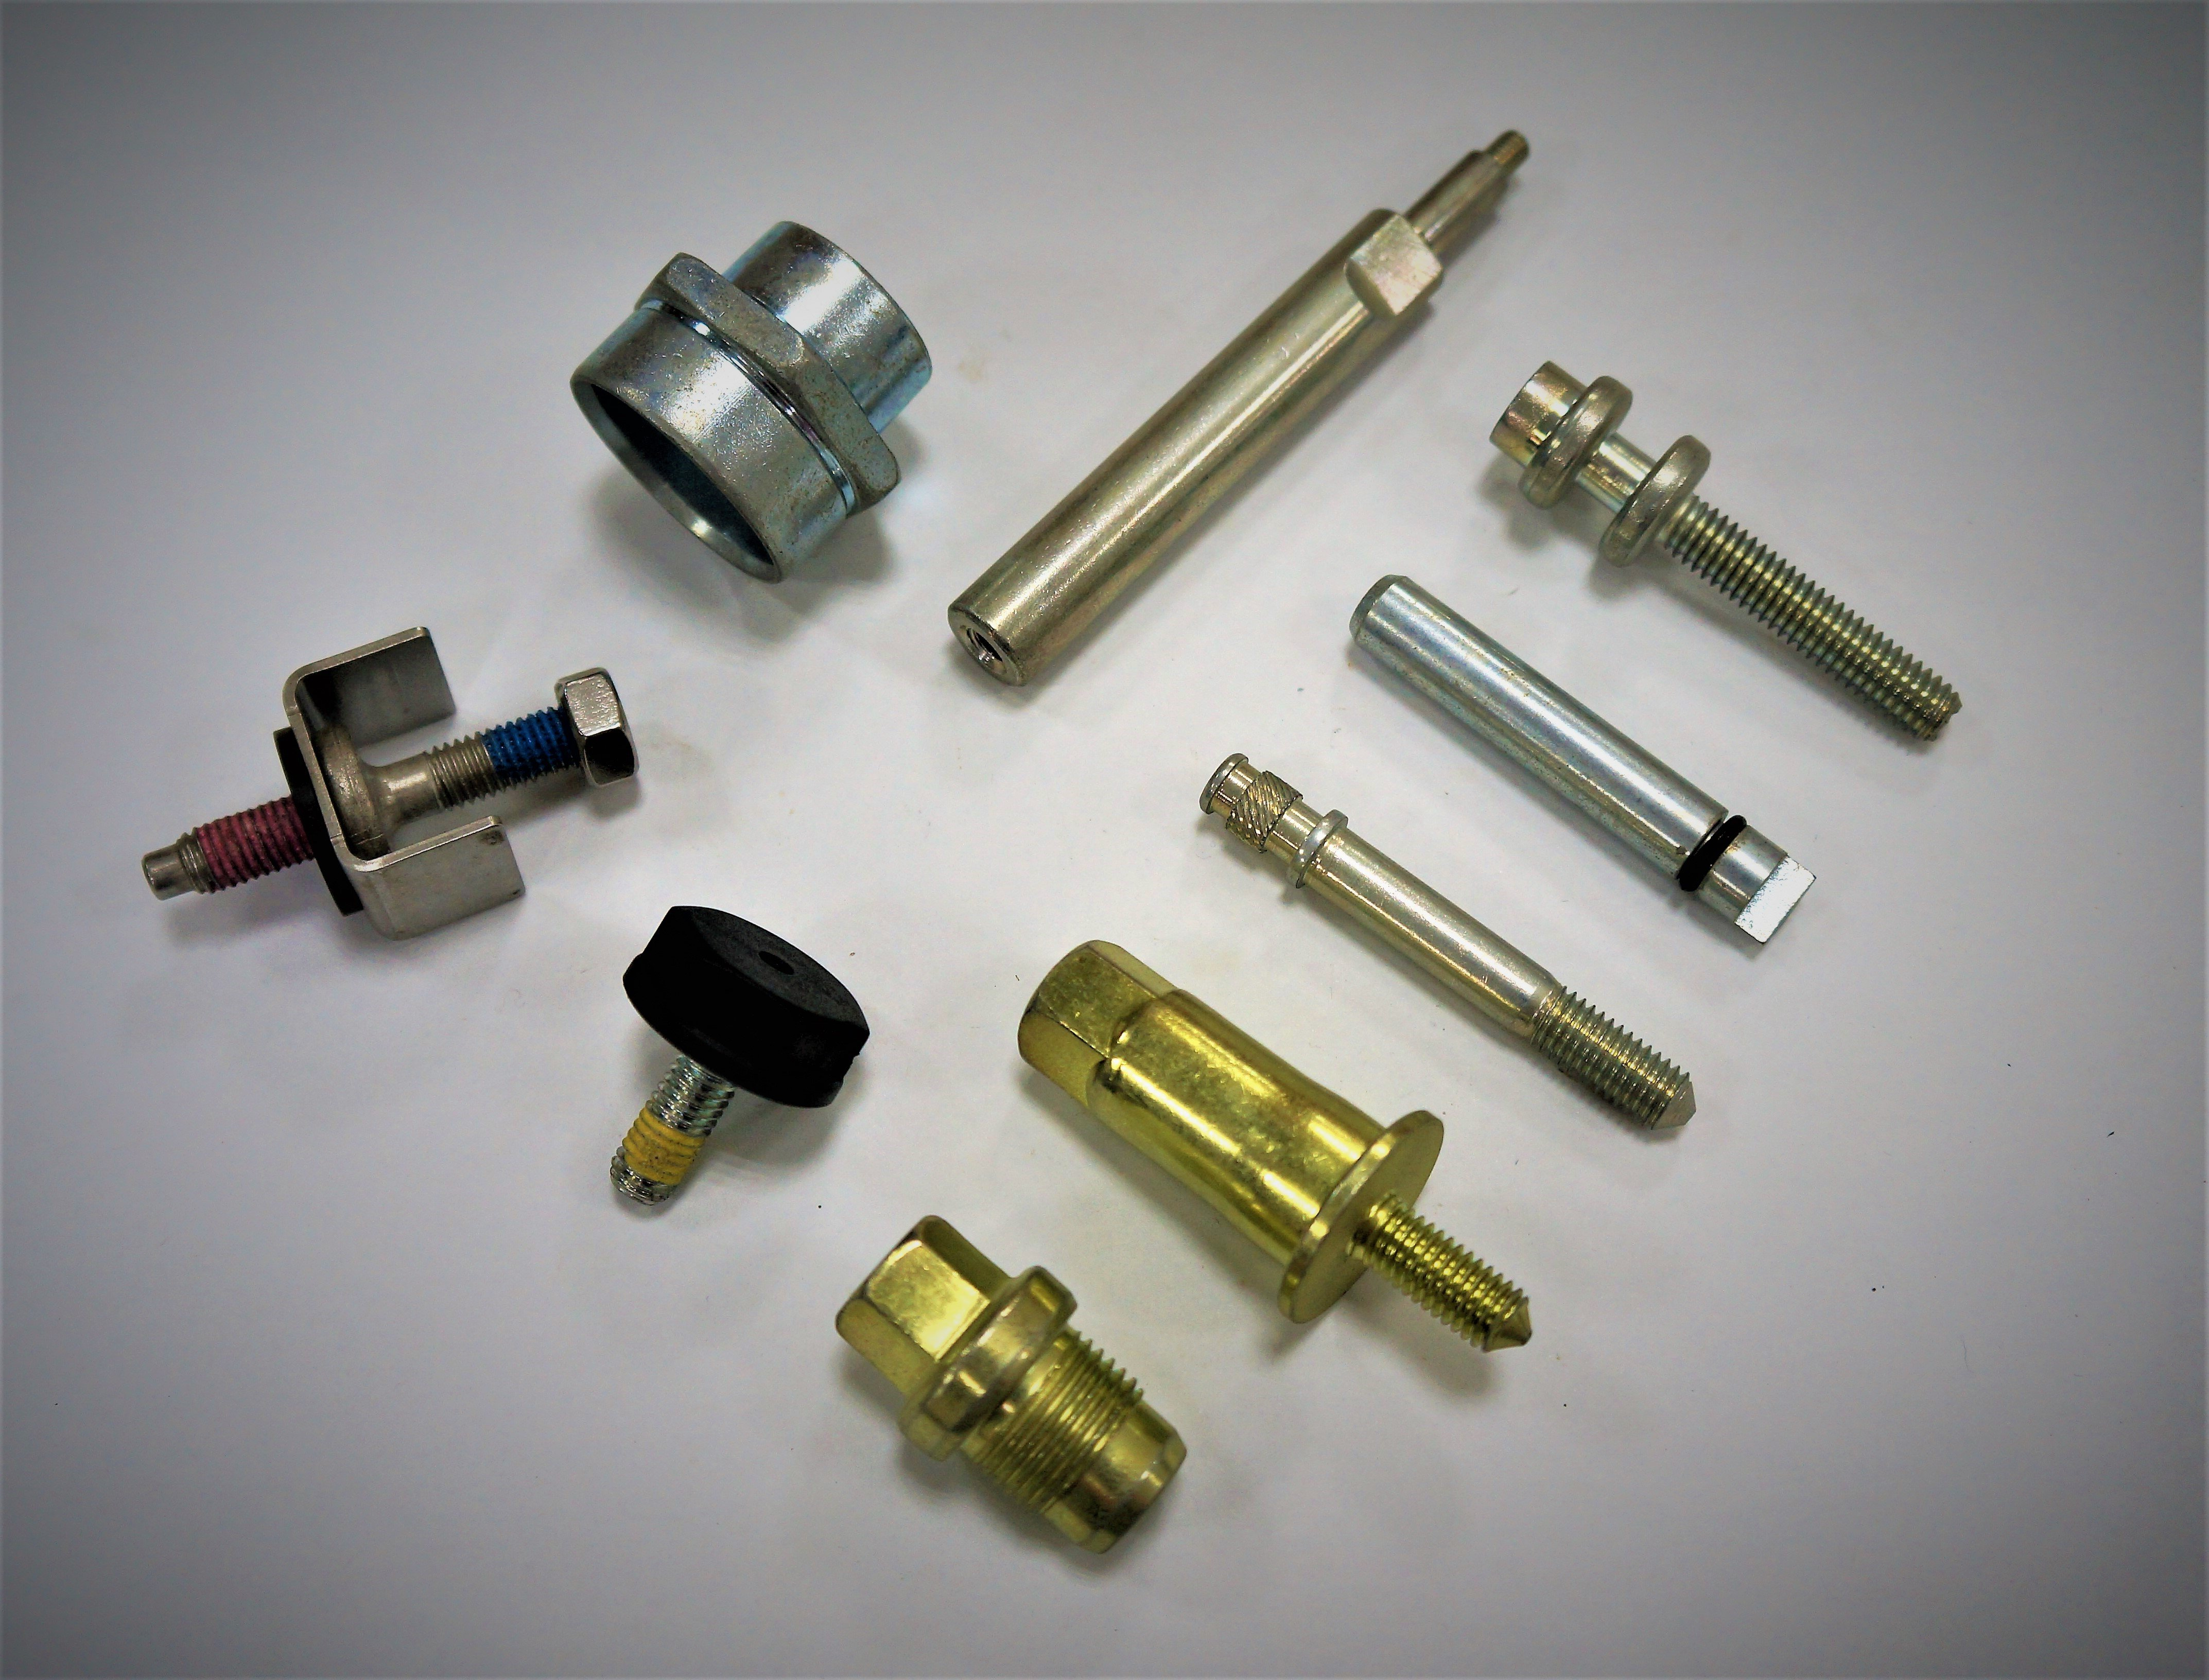 Agricultural / Tractor Special Screw with Nylon for Vehicle Fastener made by Sunny Screw Industry 三能螺栓工業股份有限公司 - MatchSupplier.com